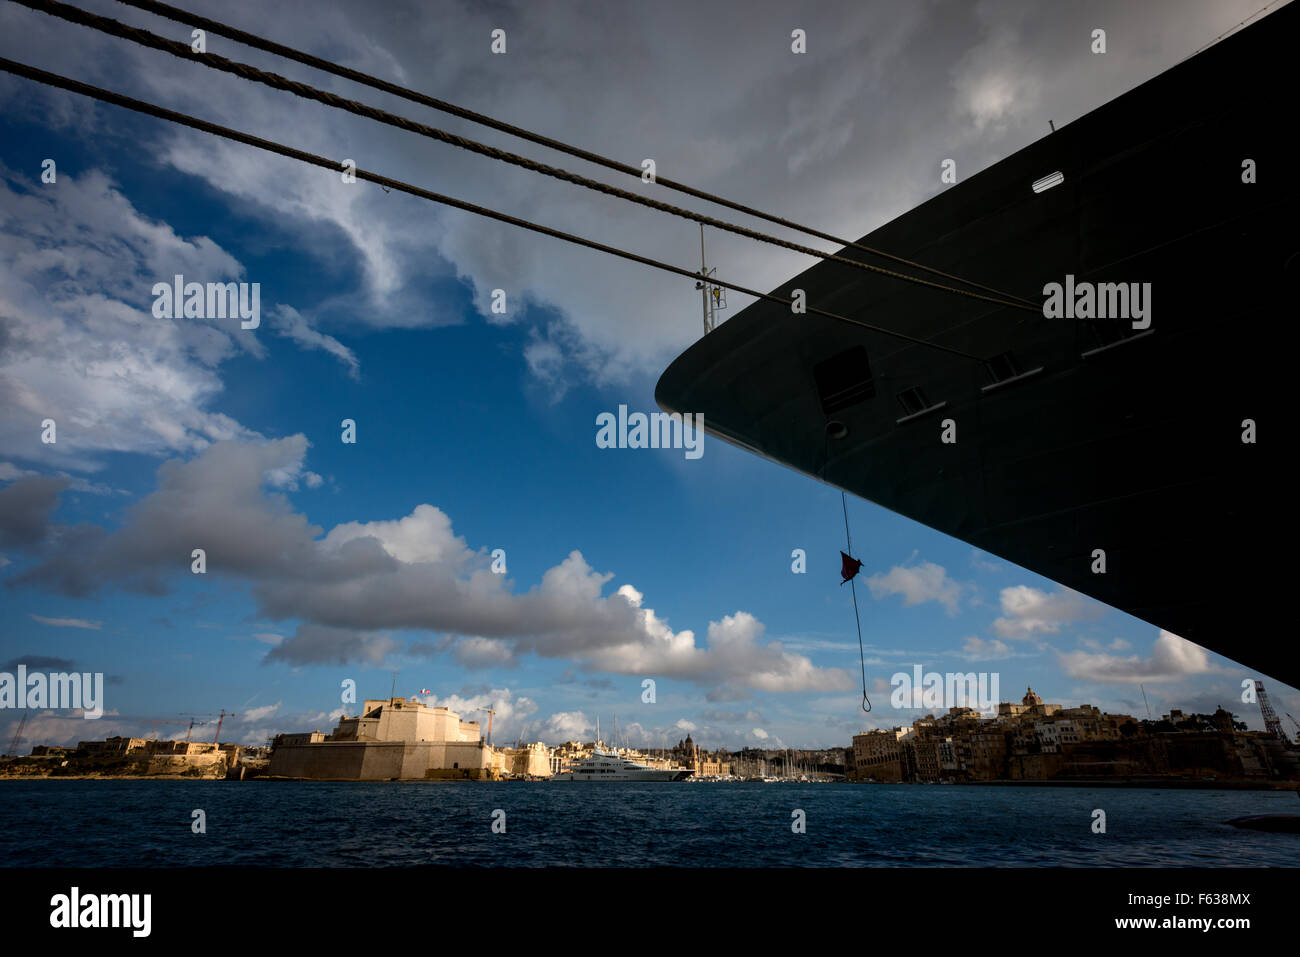 Looking across to Fort St Angelo in Birgu, under the bow of a cruise ship, opposite Valletta in Malta. - Stock Image